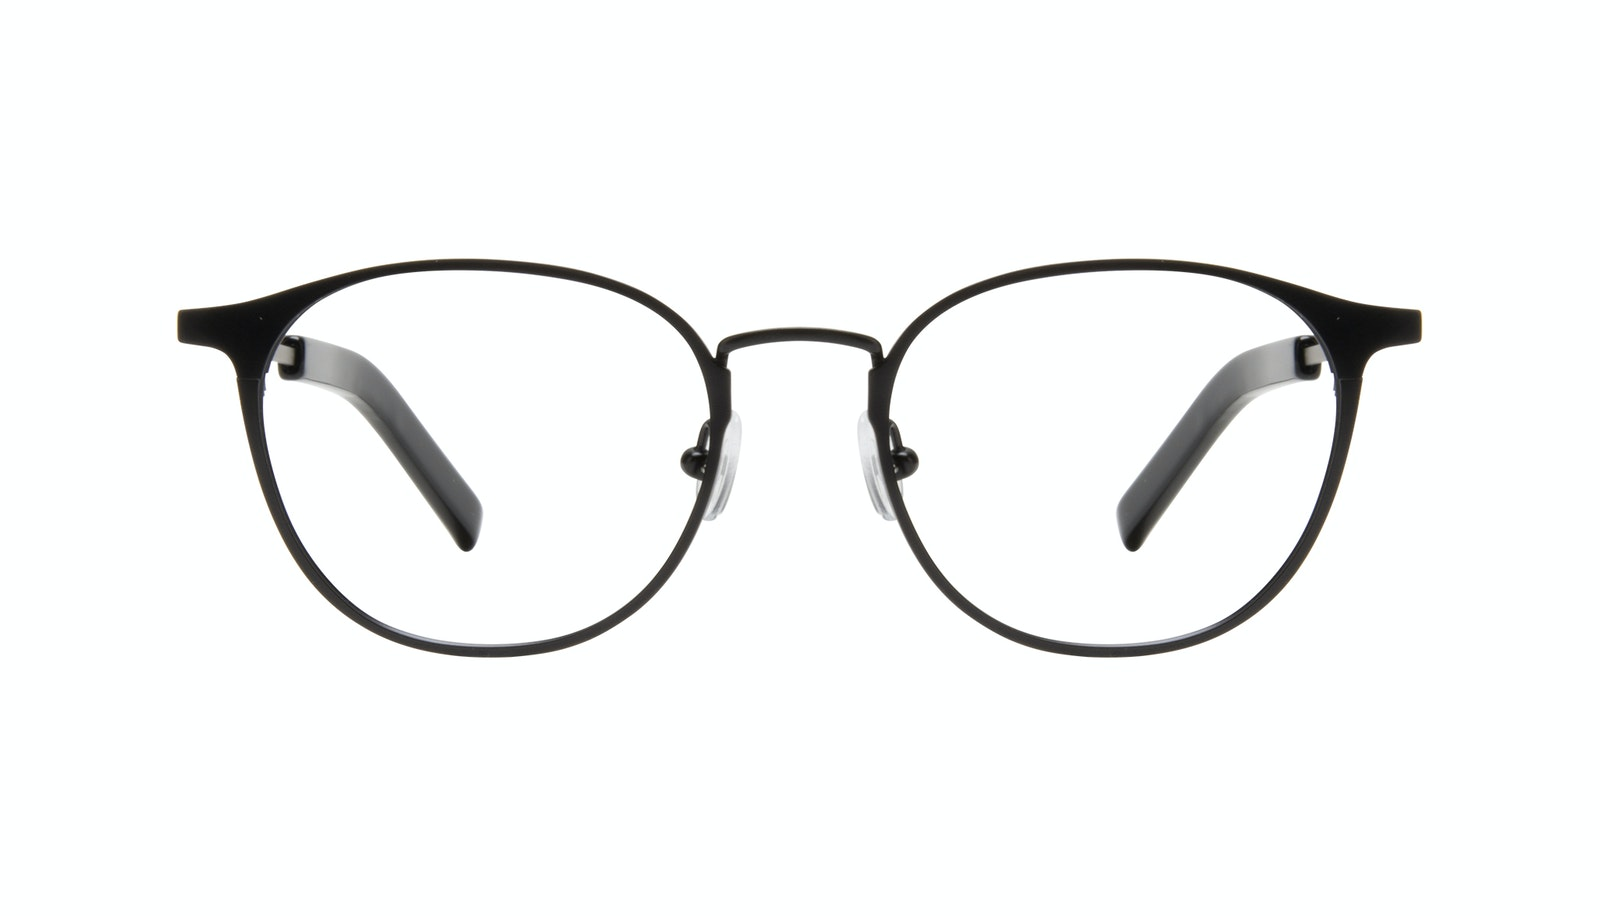 Affordable Fashion Glasses Round Eyeglasses Men Point Onyx Matte